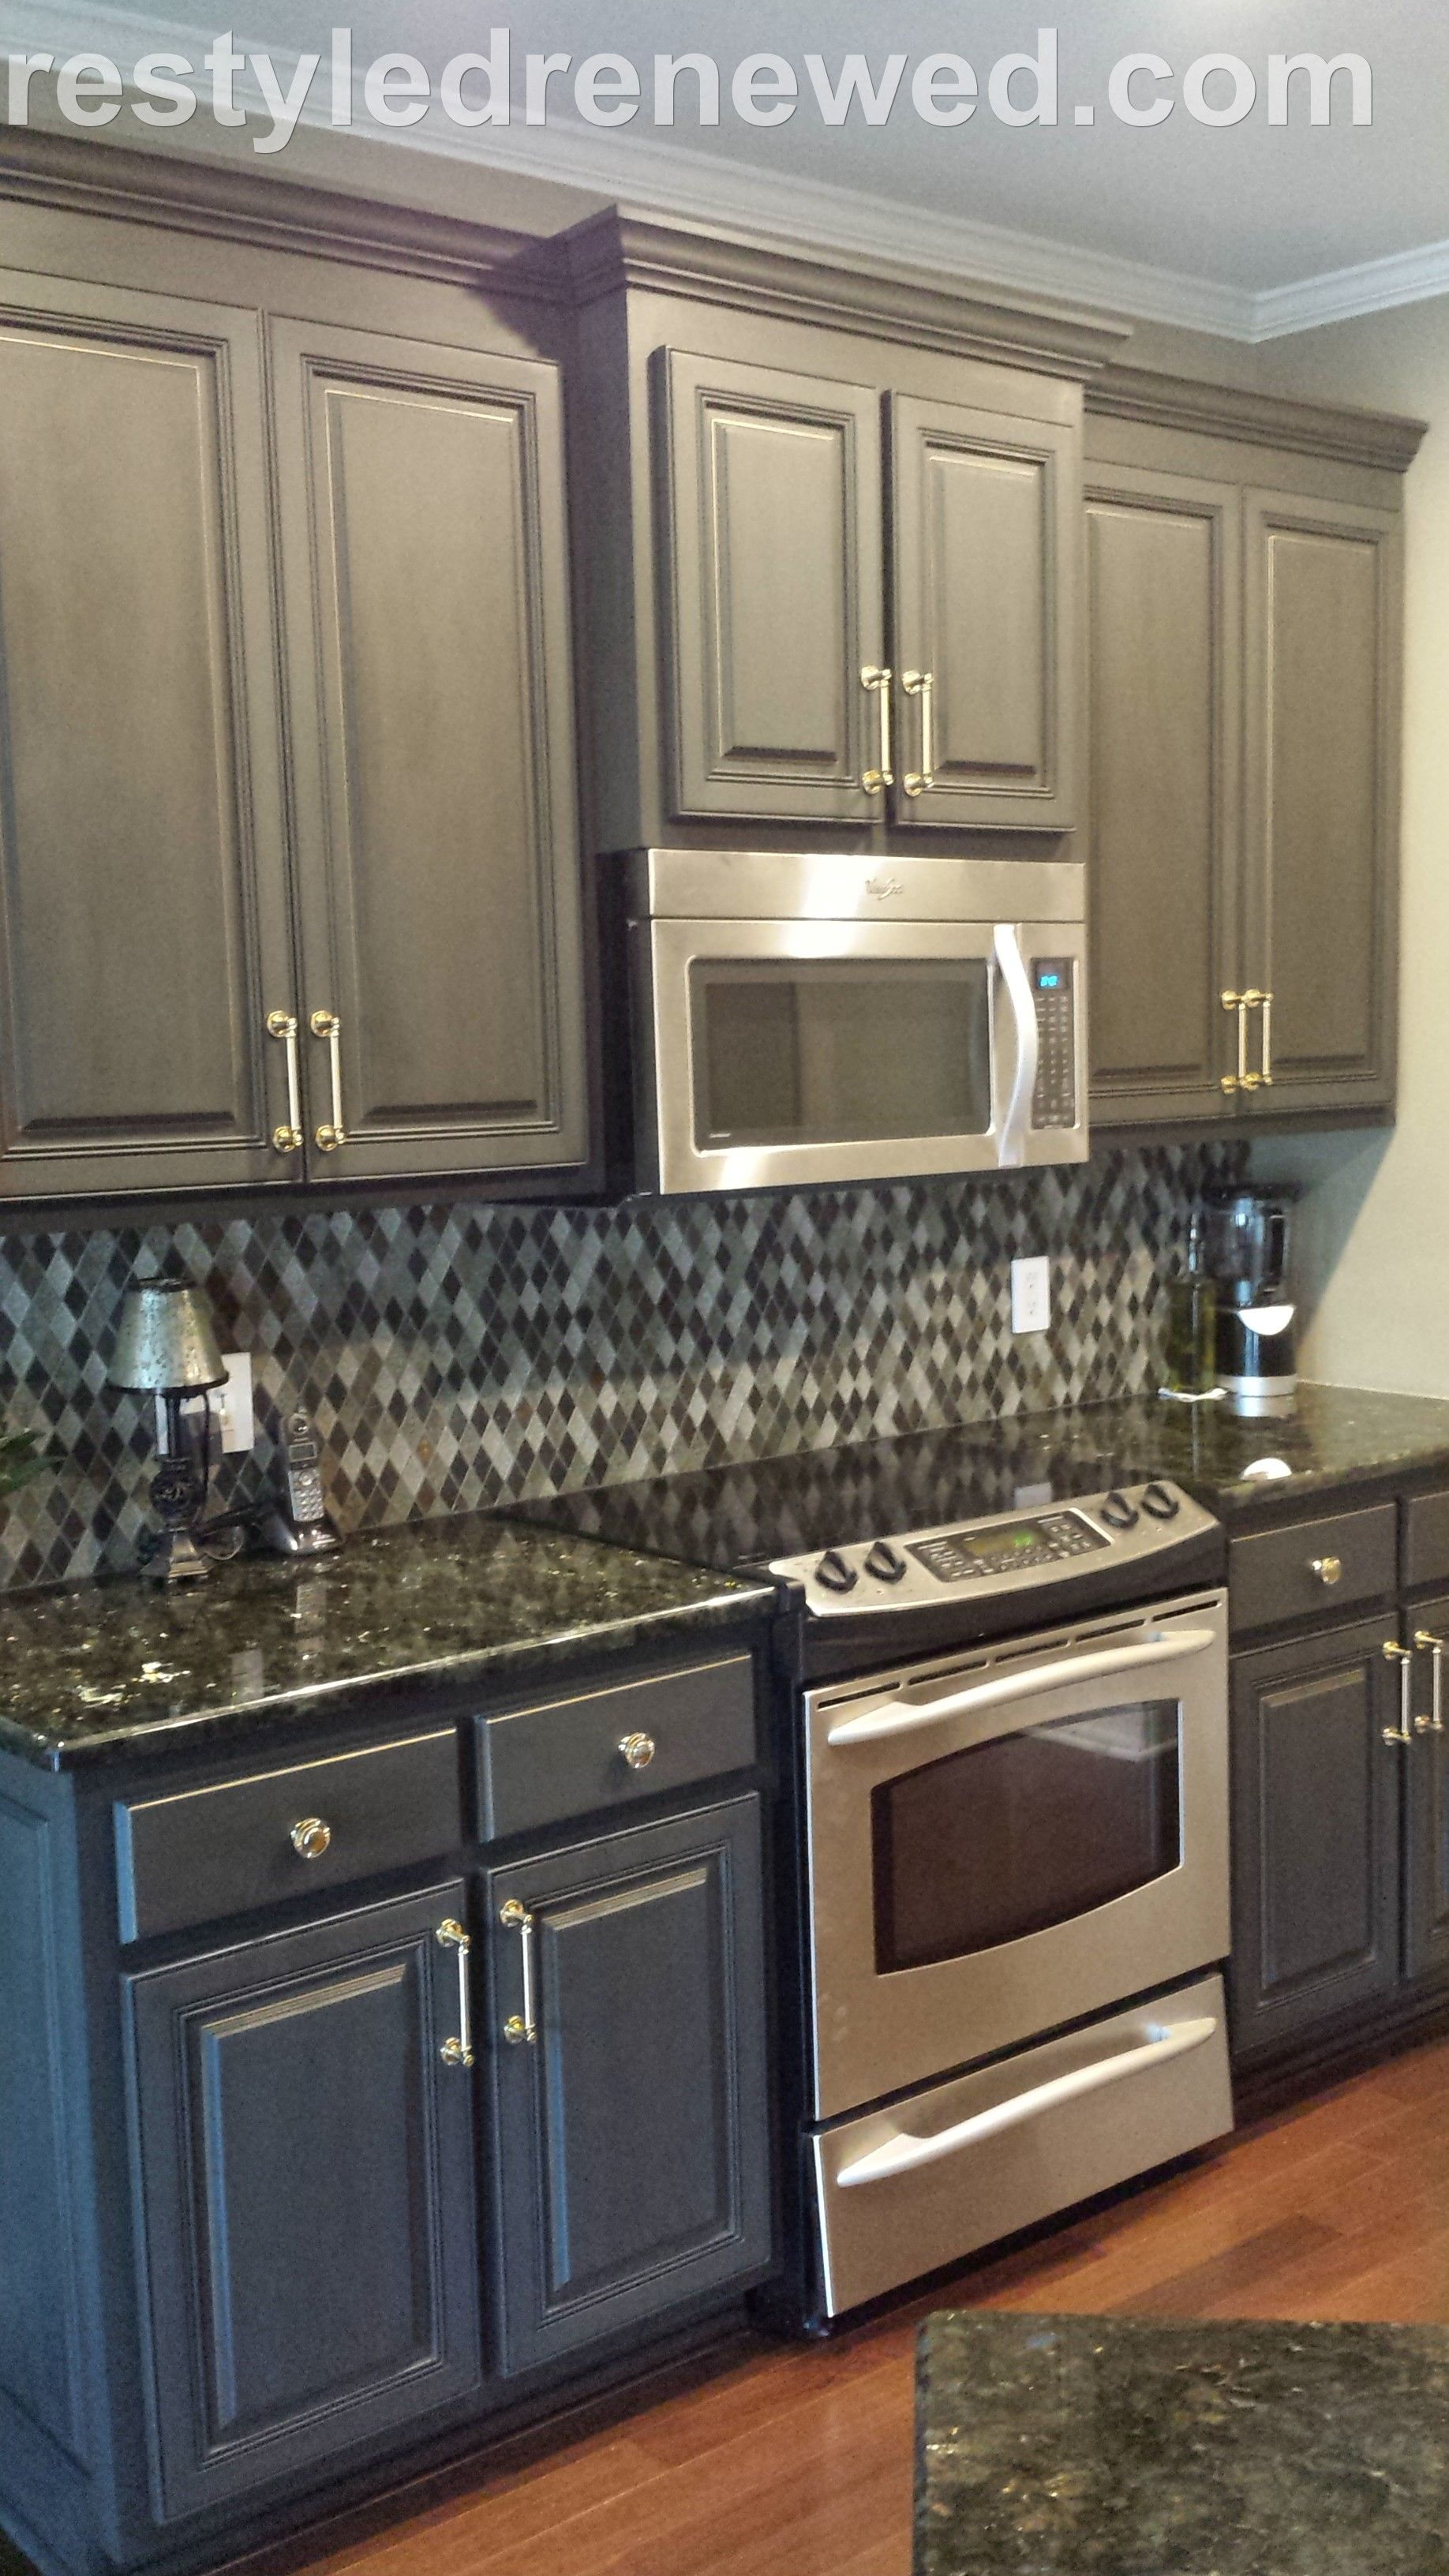 Cabinets Annie Sloan Chalk Paint In Graphite Dark Wax I Added A Gold Edging We Installed This New Br Hardware